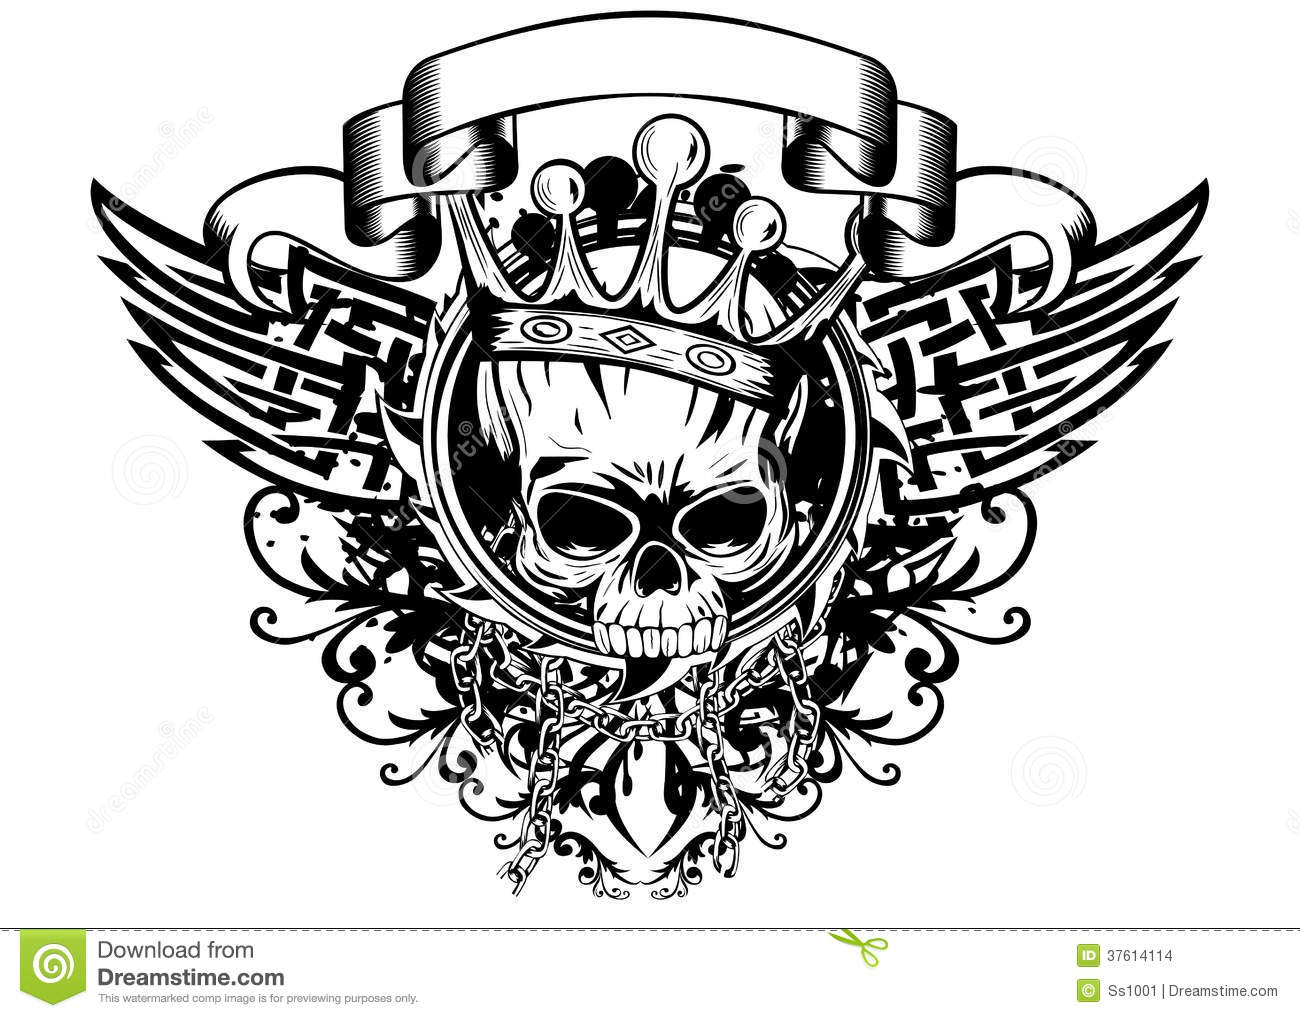 Kanji Tattoos furthermore Red Tailed Hawk Clipart likewise Skull With Tribal 100369309 moreover 12 Inspiring Quote Coloring Pages For Adults Free Printables furthermore EAGLE 147258088. on cool harley davidson wallpaper